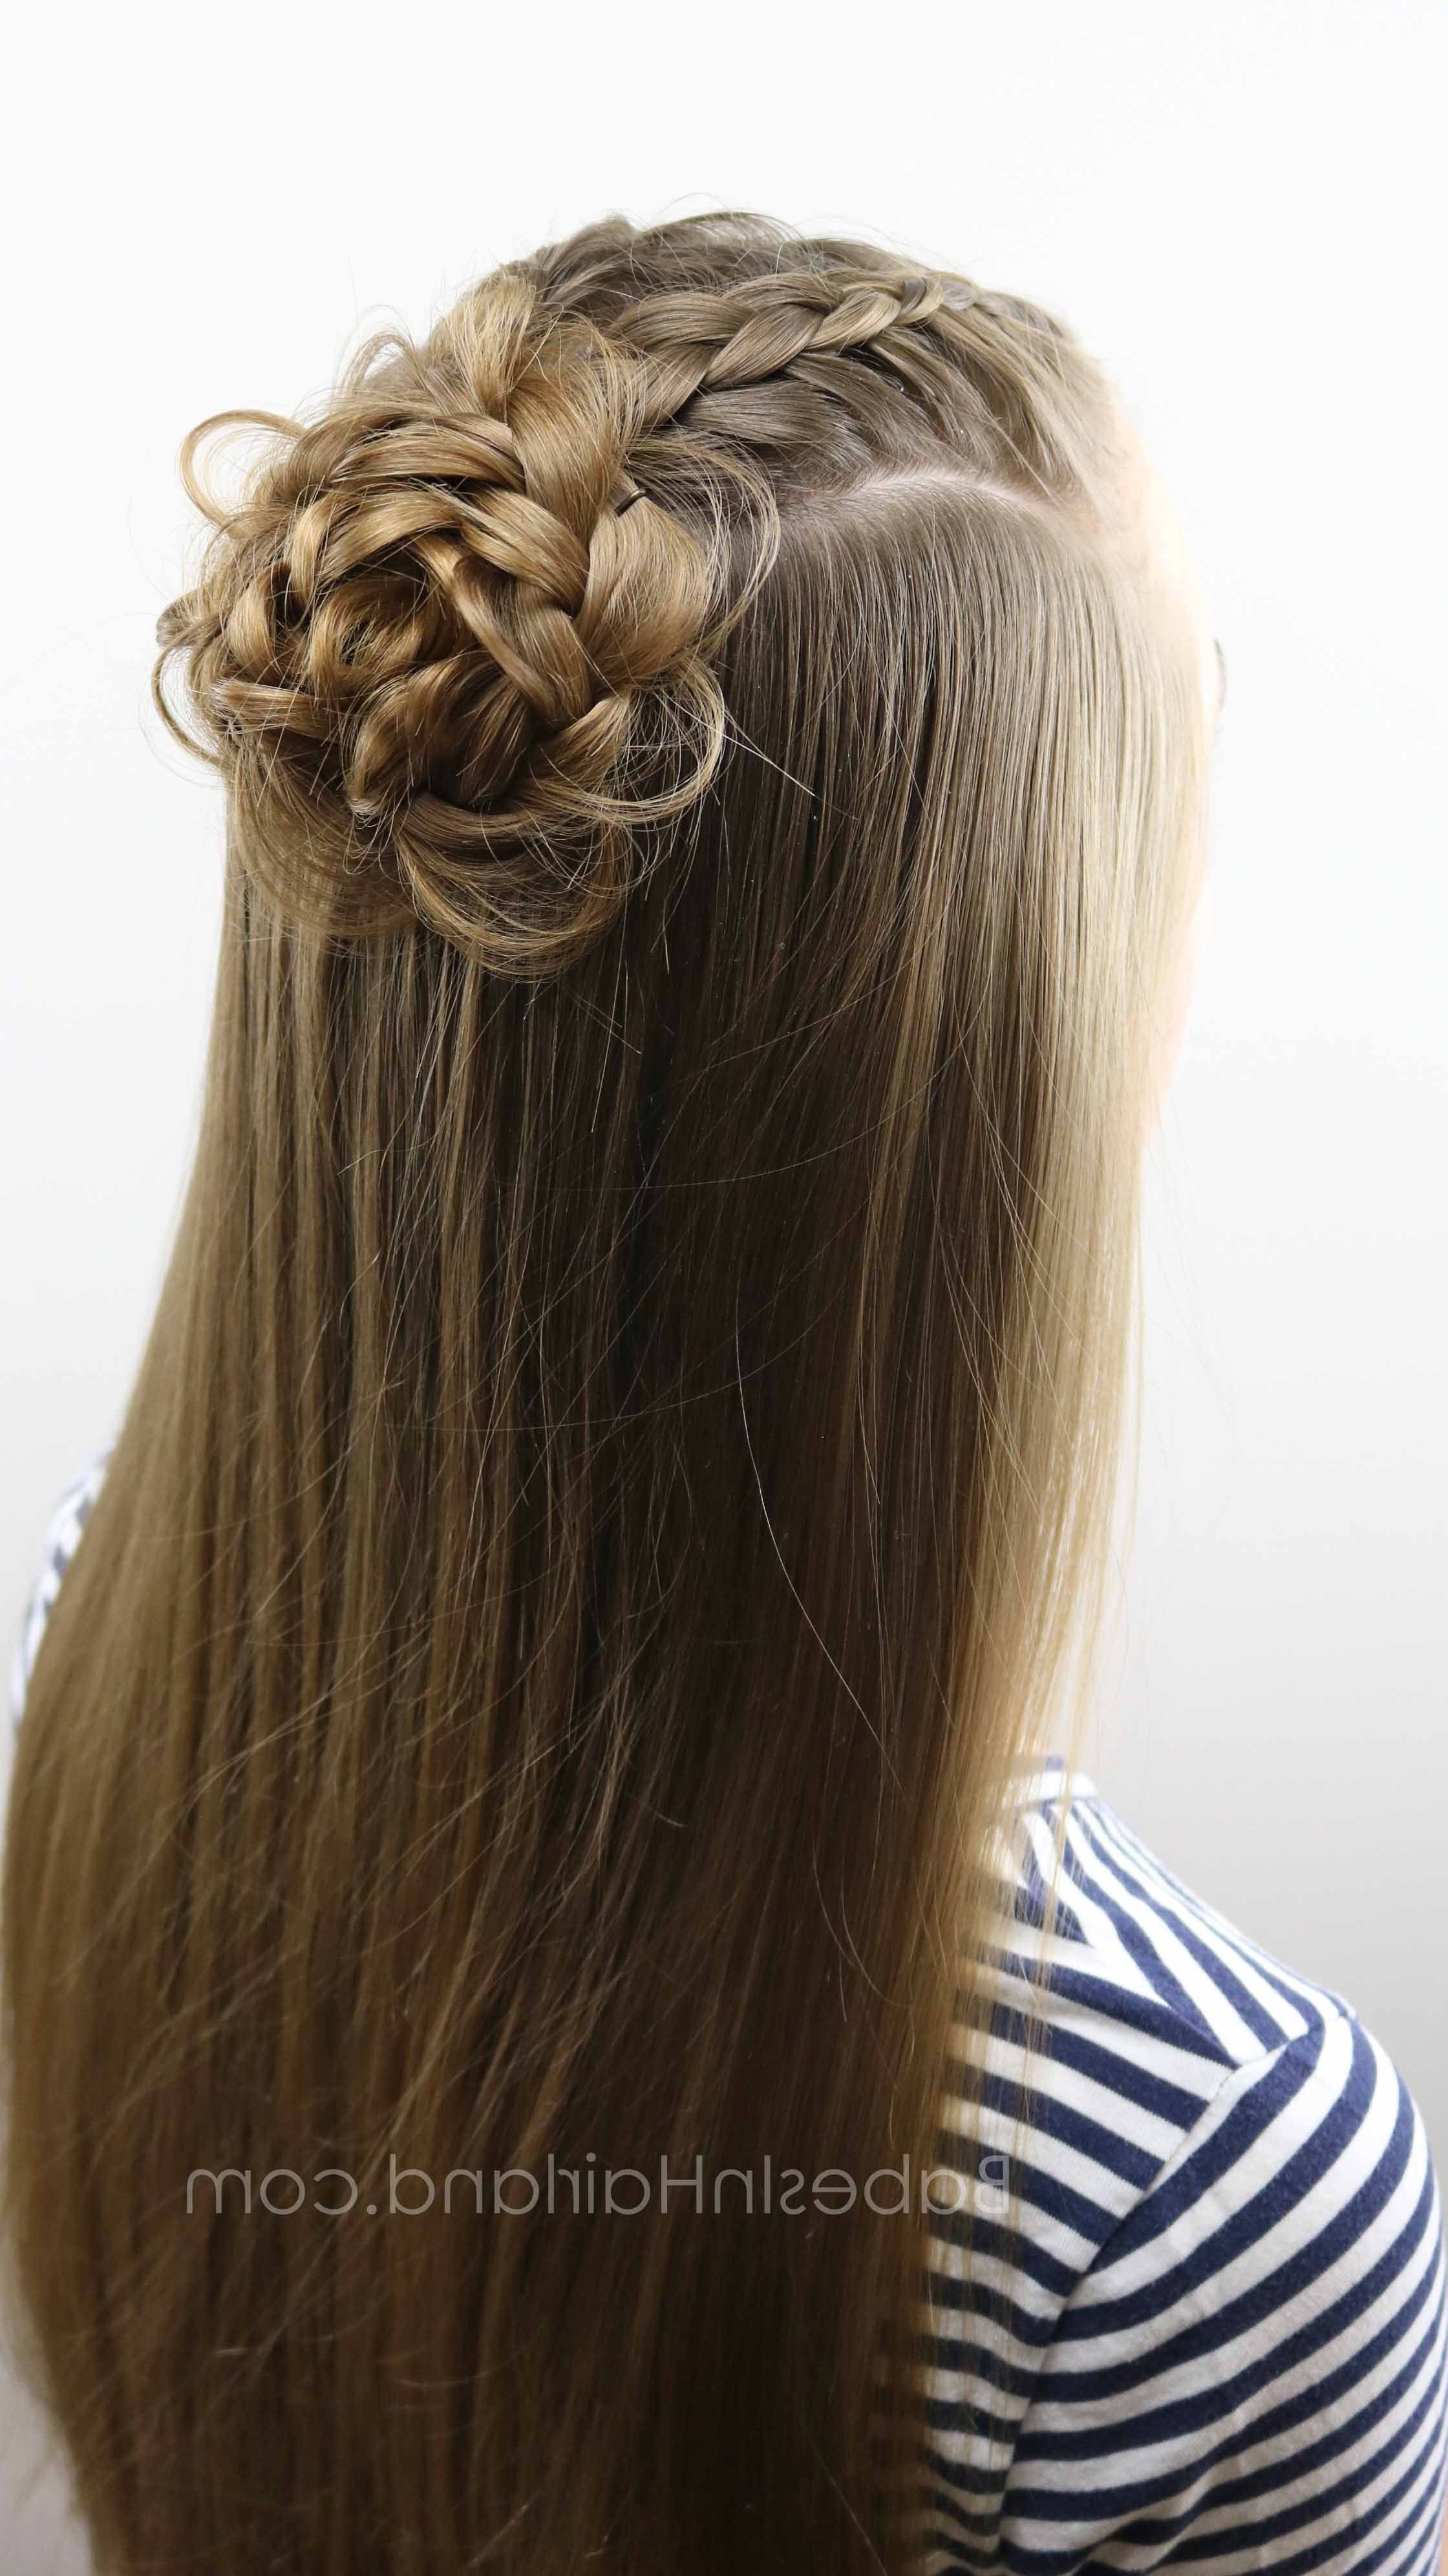 **babes In Hairland Pertaining To Best And Newest Dutch Braid Pony Hairstyles (View 1 of 20)